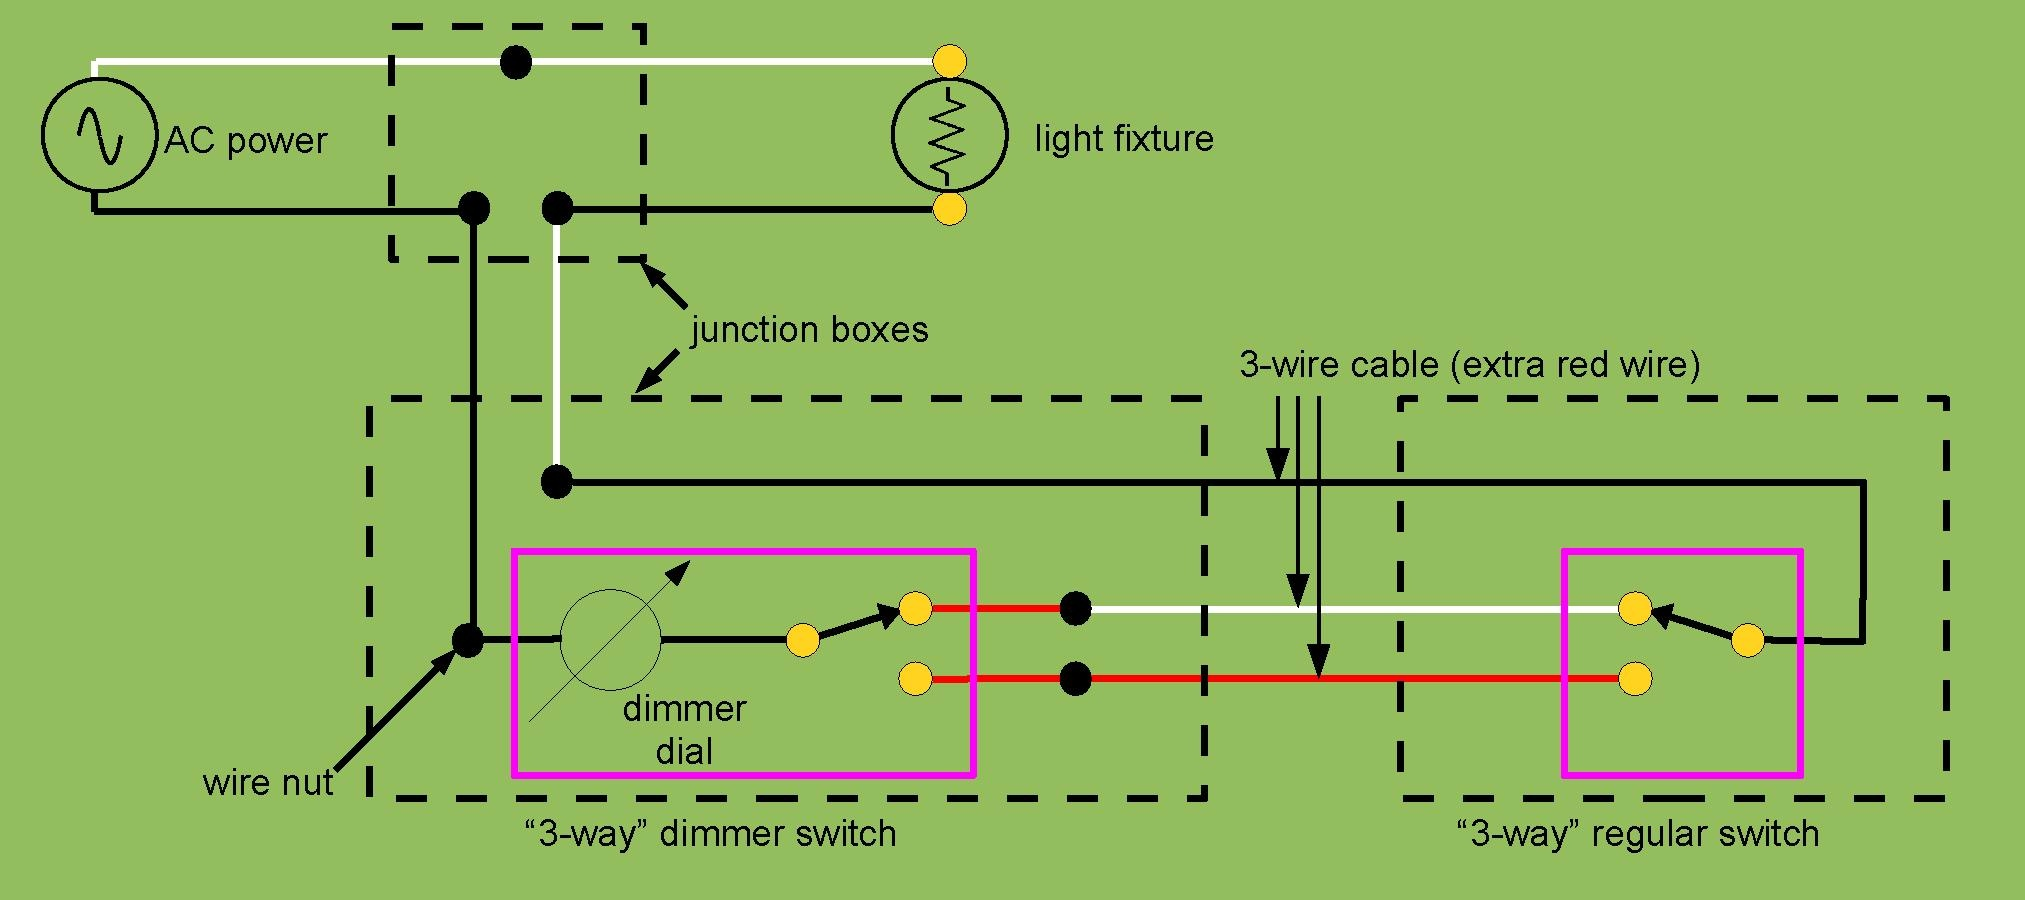 file:3-way dimmer switch wiring pdf